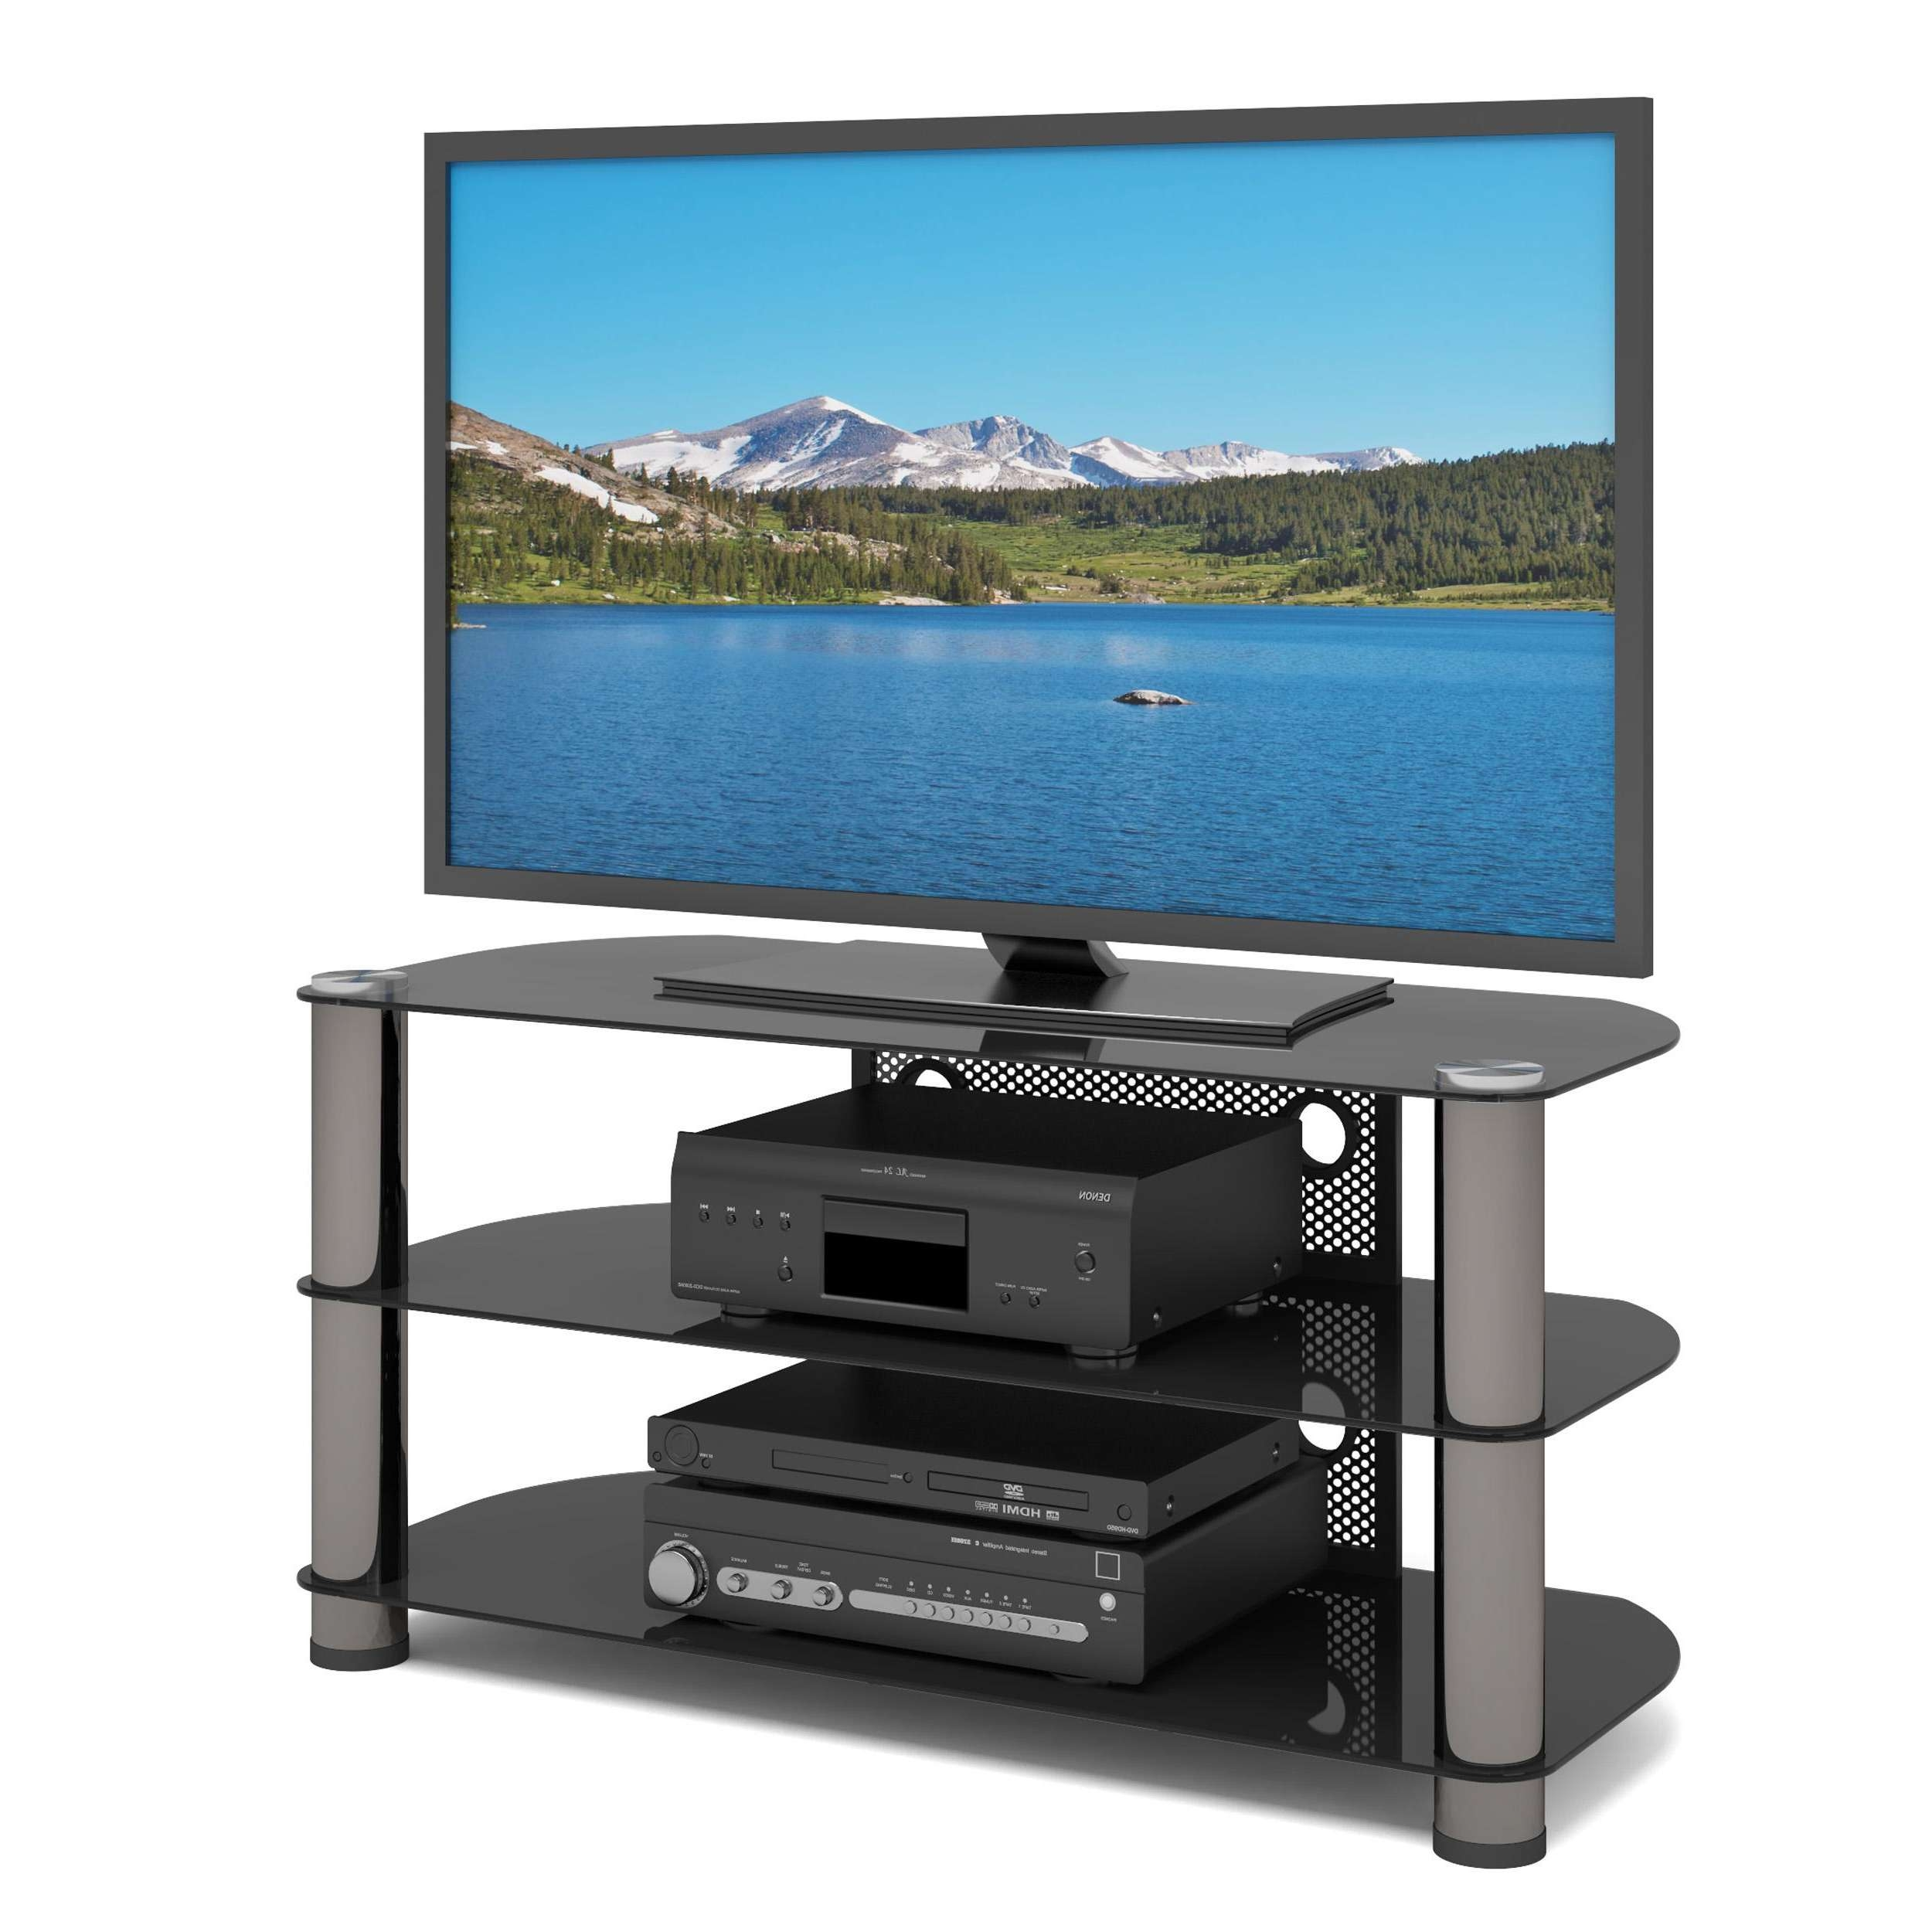 Epic Sonax Tv Stands 45 About Remodel Small Home Remodel Ideas Throughout Sonax Tv Stands (View 7 of 15)